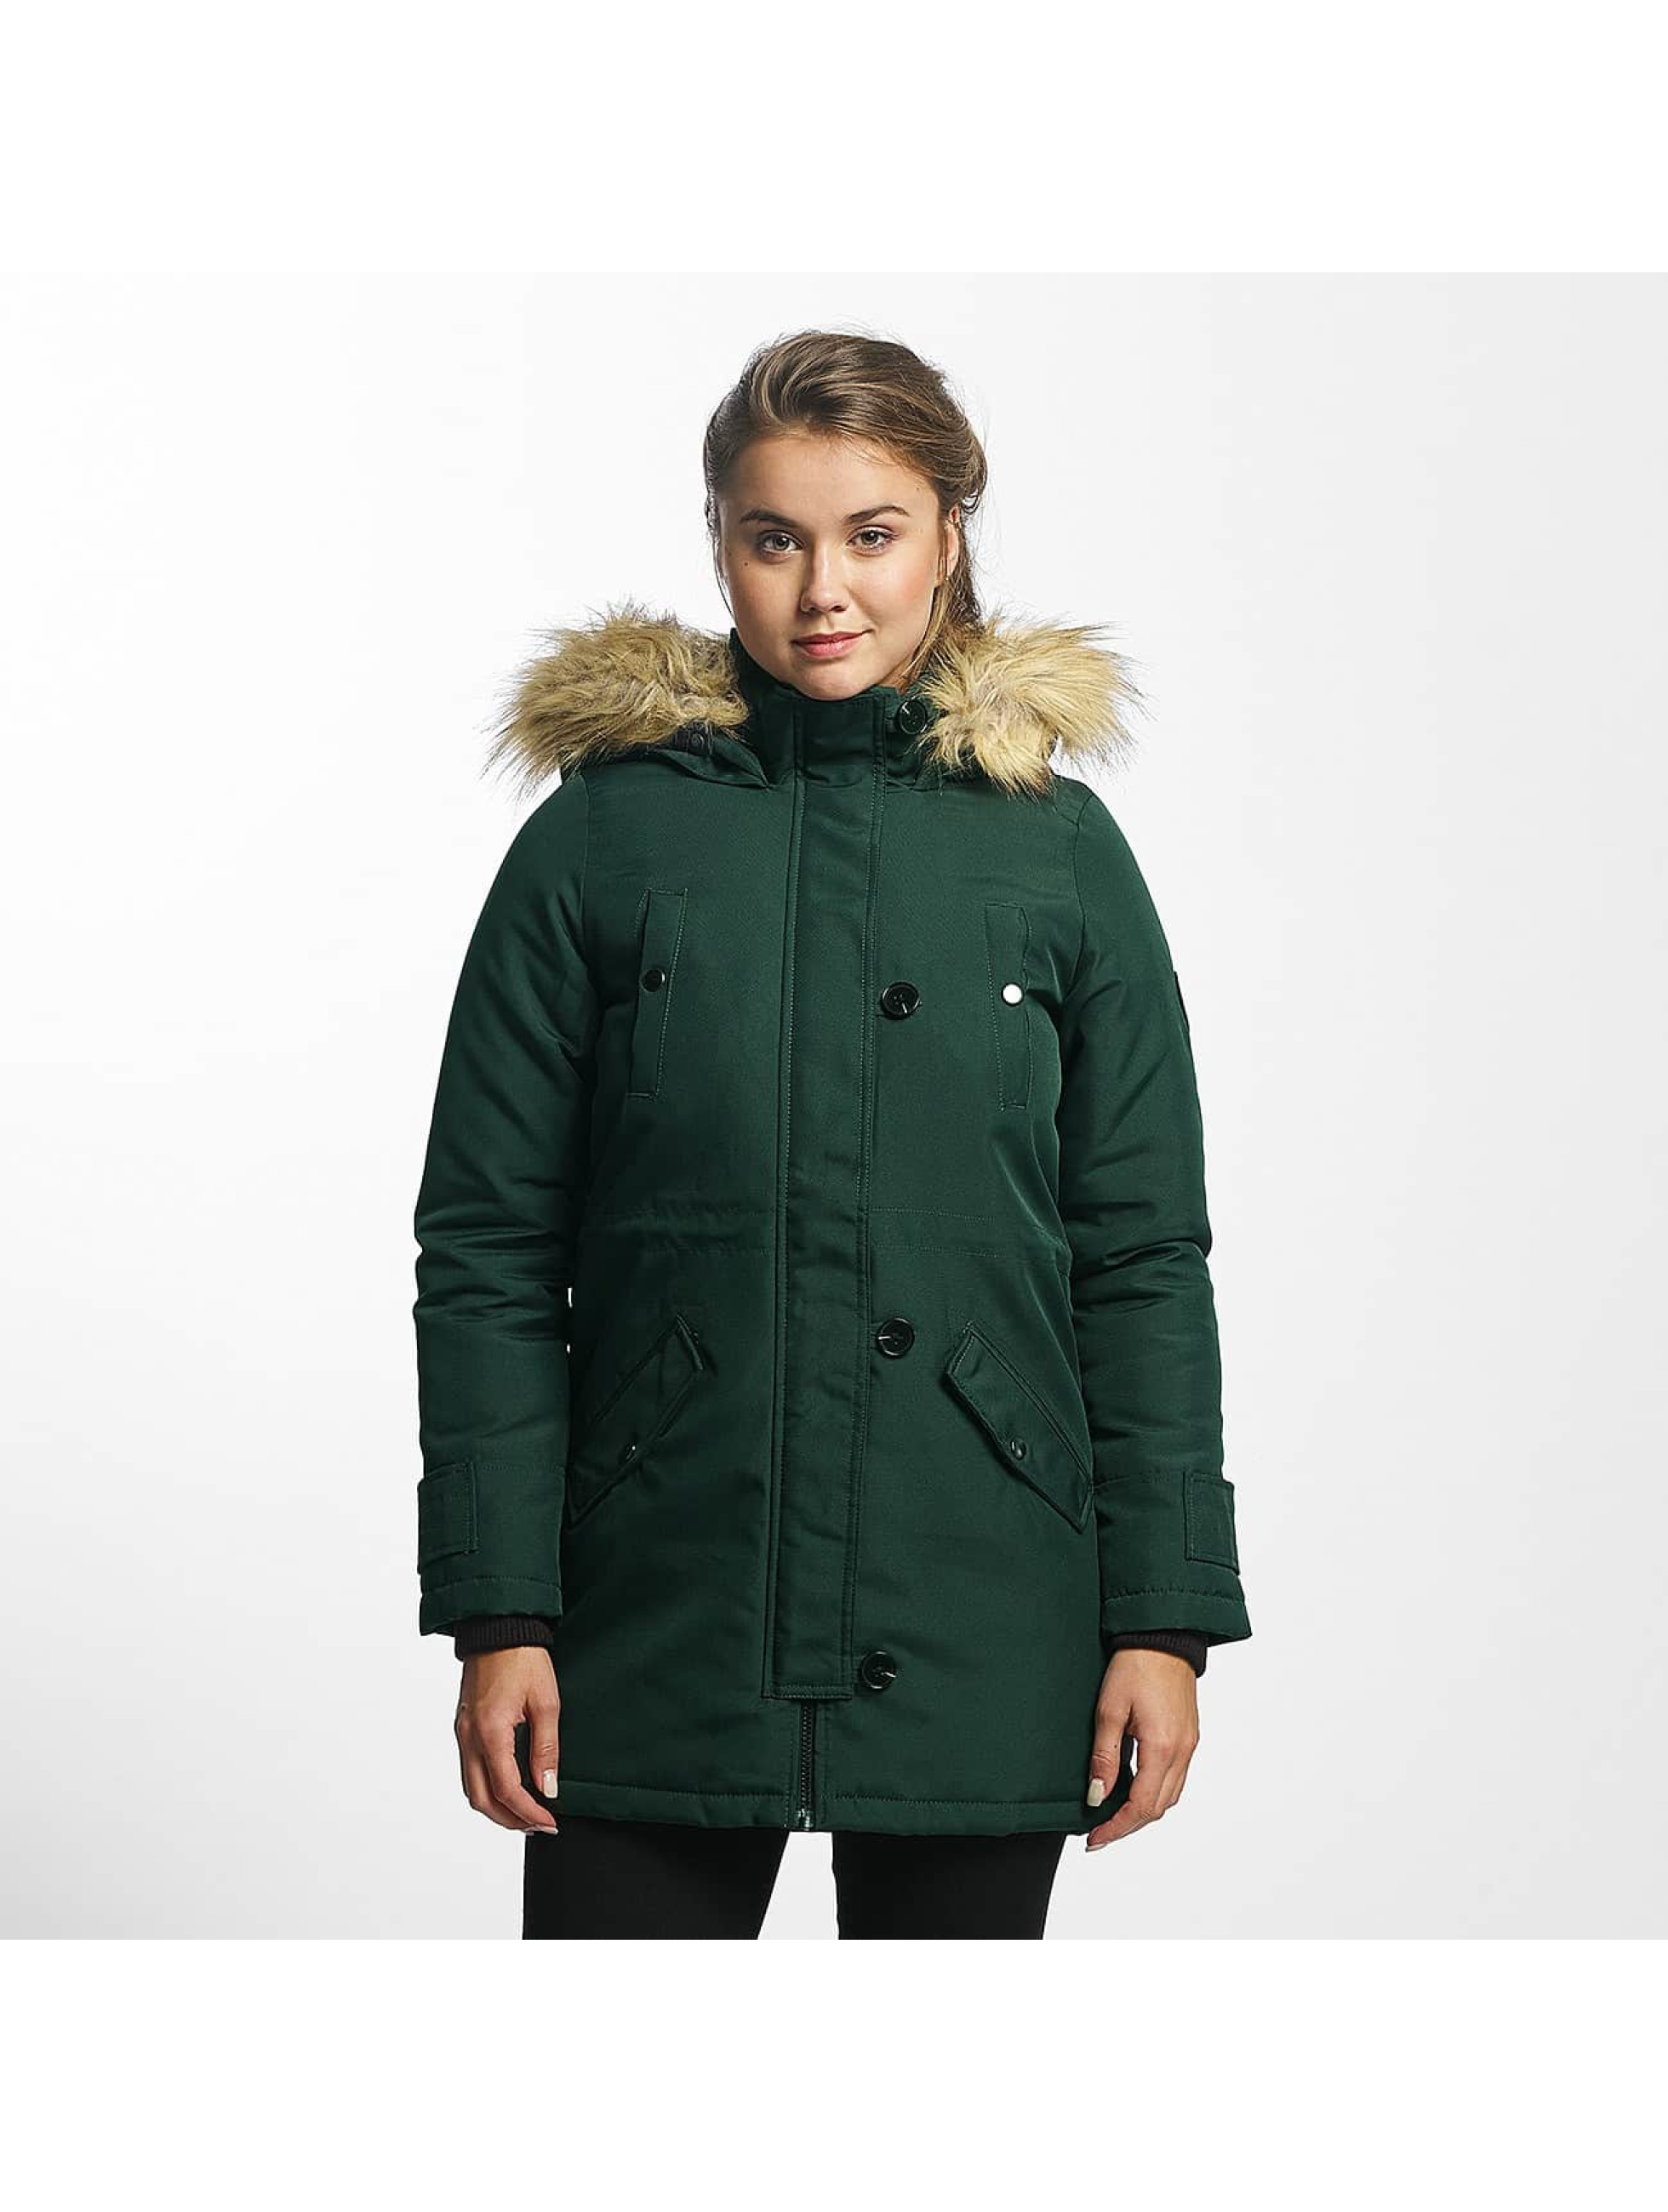 Vero Moda Manteau hiver vmExcursion Expedition 3/4 vert